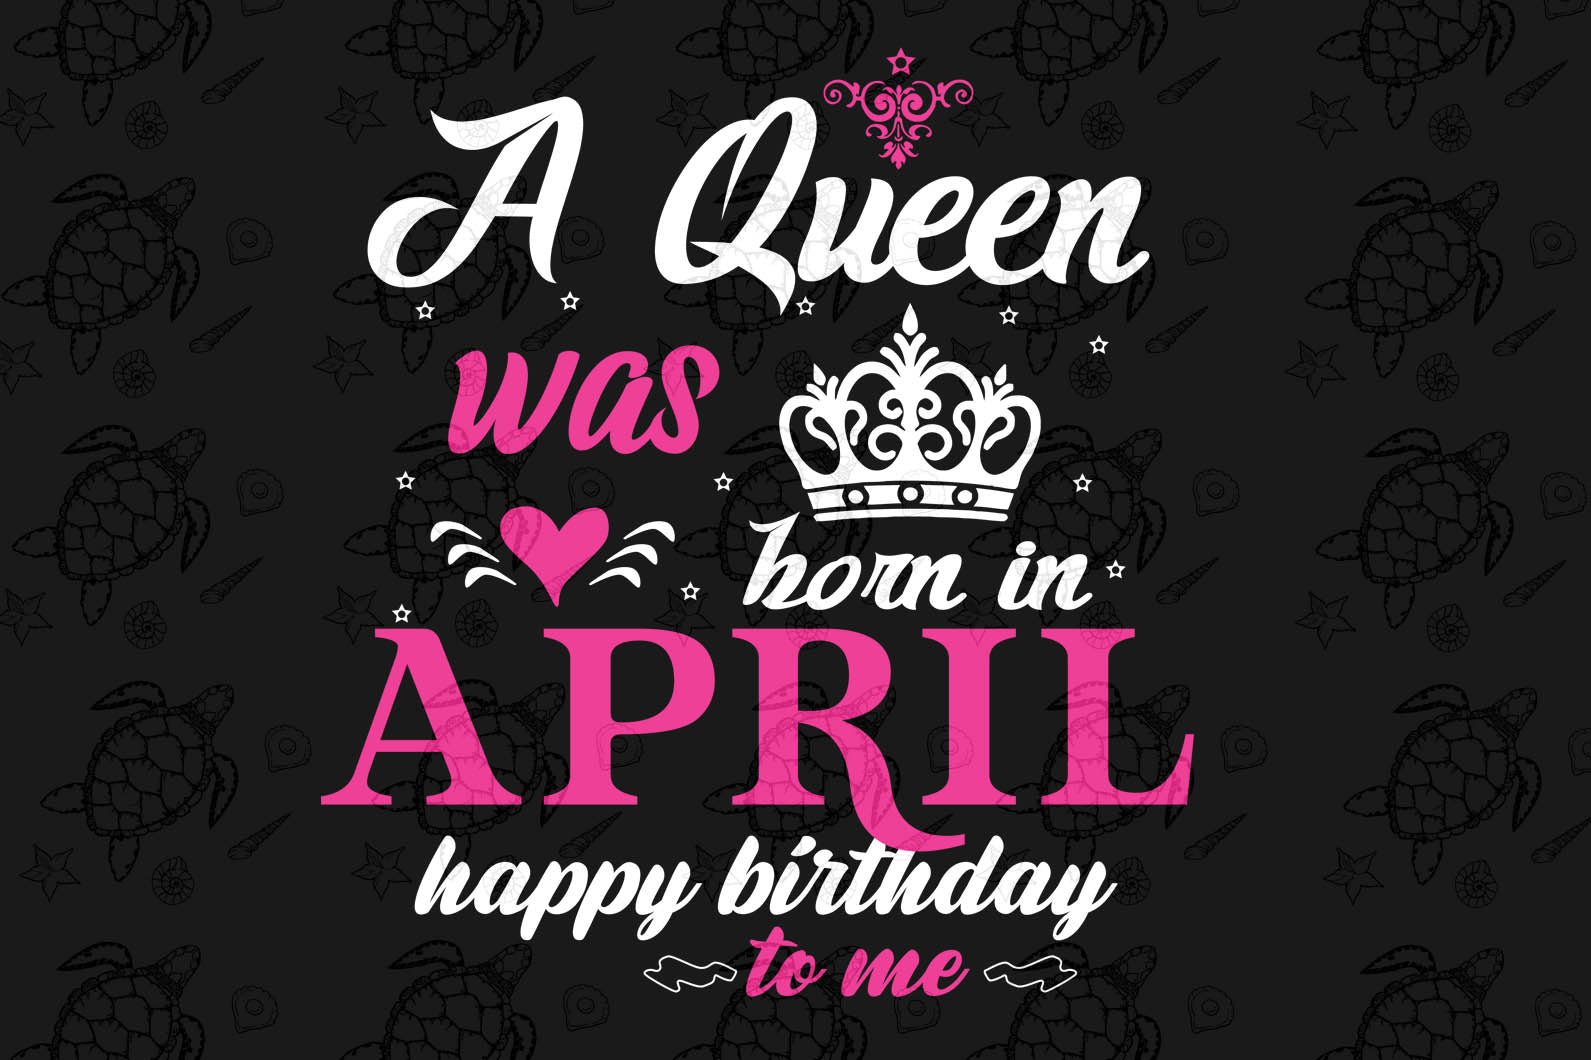 A queen was born in April, retro vintage shirt, born in April, April svg, April birthday, April birthday gift, birthday shirt, queen svg, girl gift, girl shirt, svg cut files, svg clipart, silhouette svg, cricut svg files, decal and vinyl,